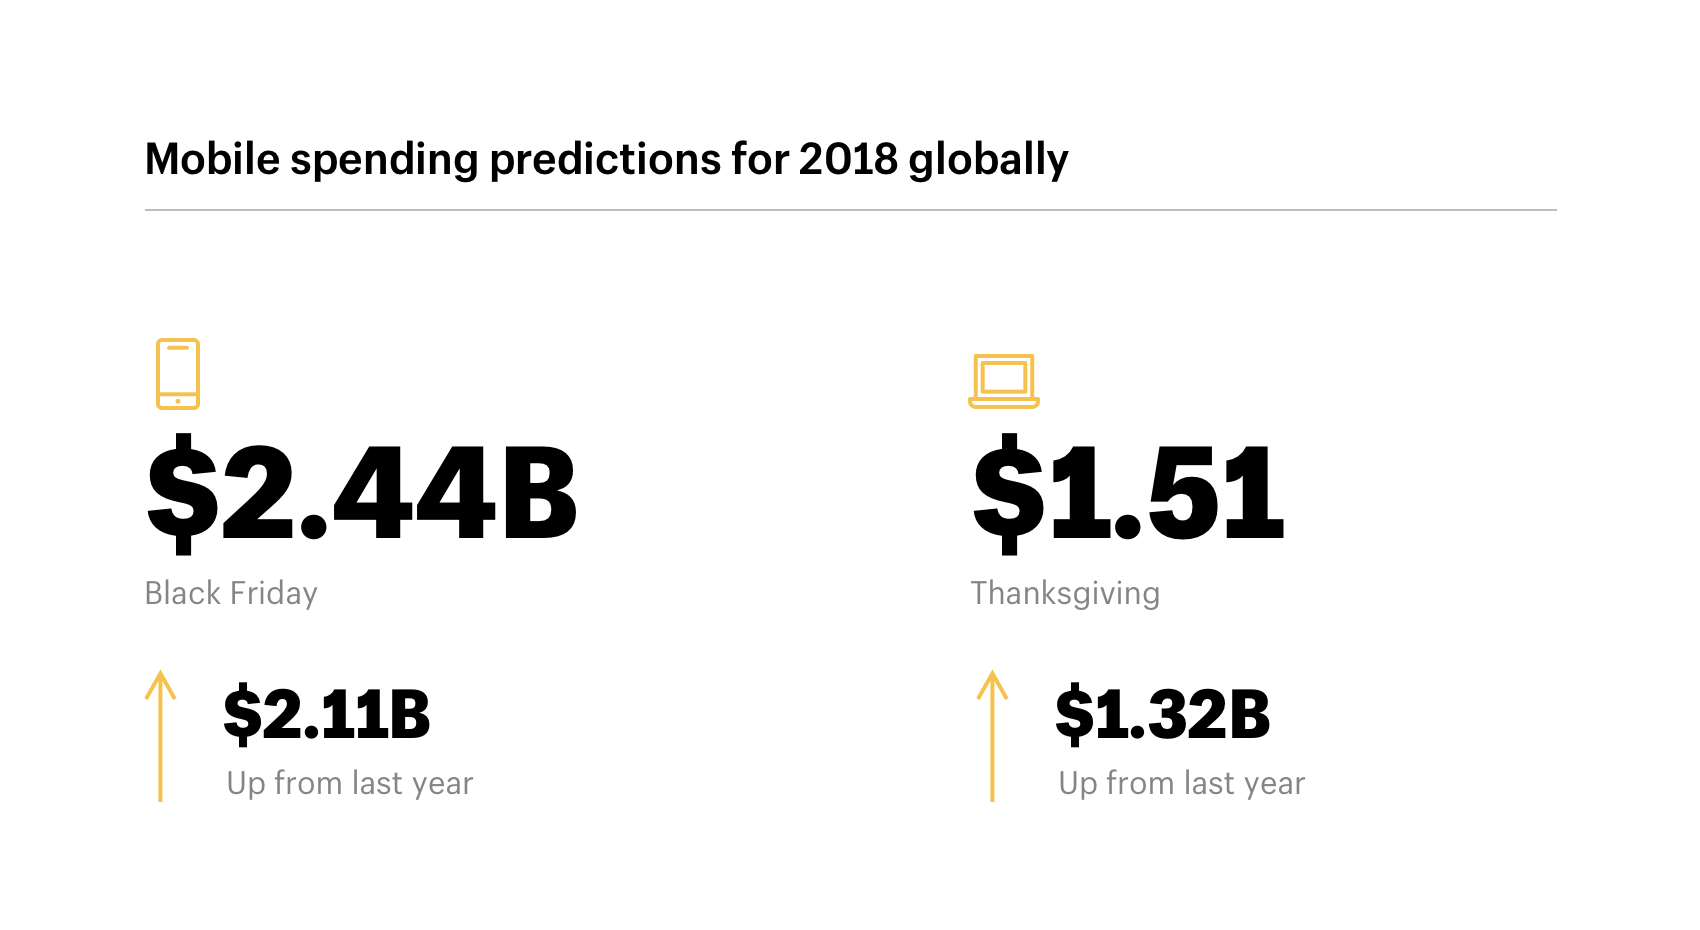 Mobile spending predictions for 2018 over the holidays